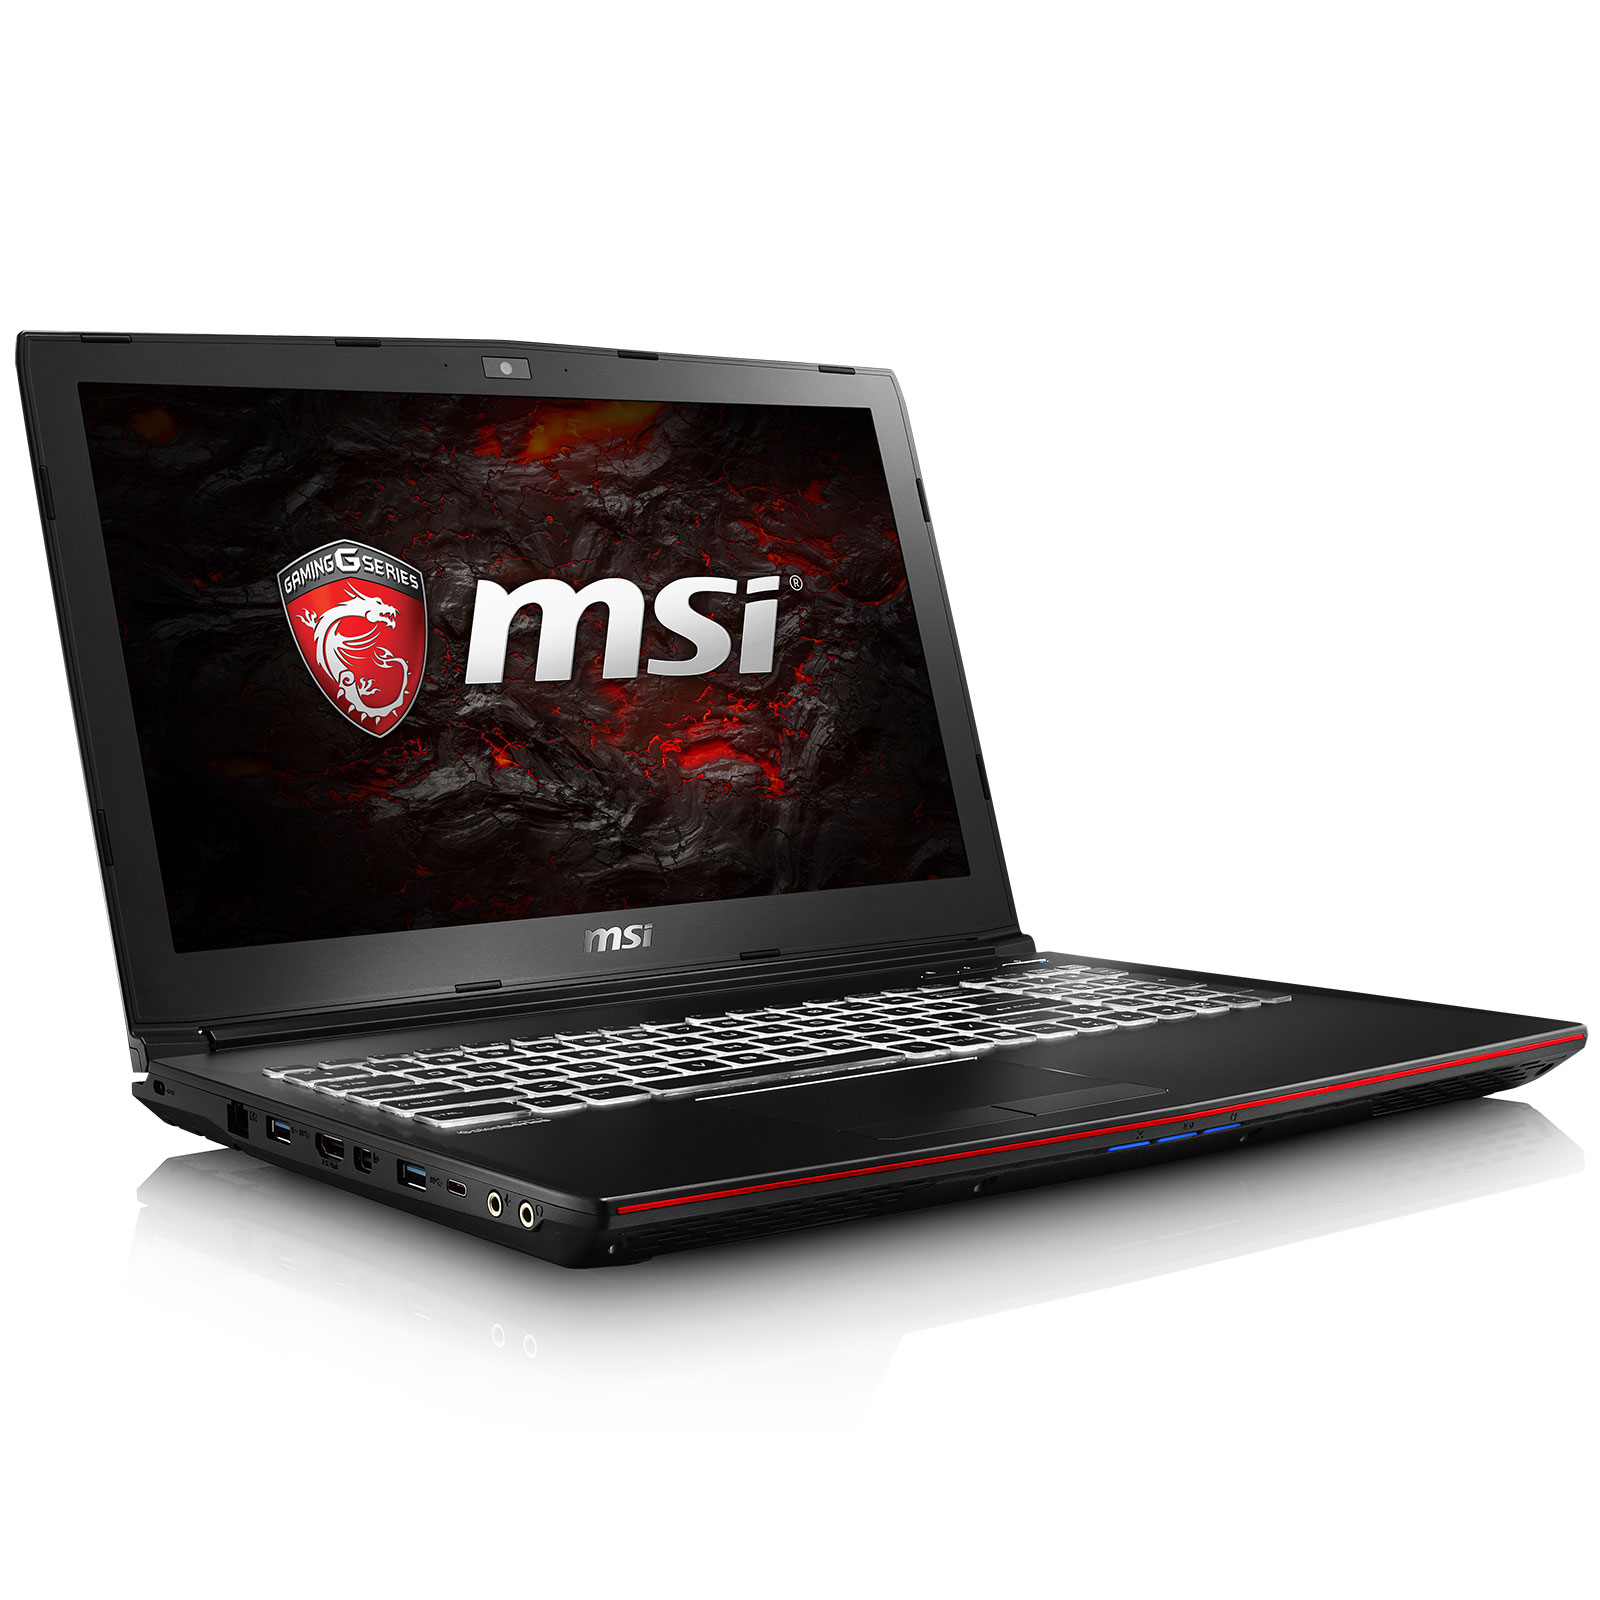 "PC portable MSI GP62 7RE-415XFR Leopard Pro Intel Core i5-7300HQ 8 Go SSD 128 Go + HDD 1 To 15.6"" LED Full HD NVIDIA GeForce GTX 1050 Ti 2 Go Graveur DVD Wi-Fi AC/Bluetooth Webcam FreeDOS (garantie constructeur 2 ans)"